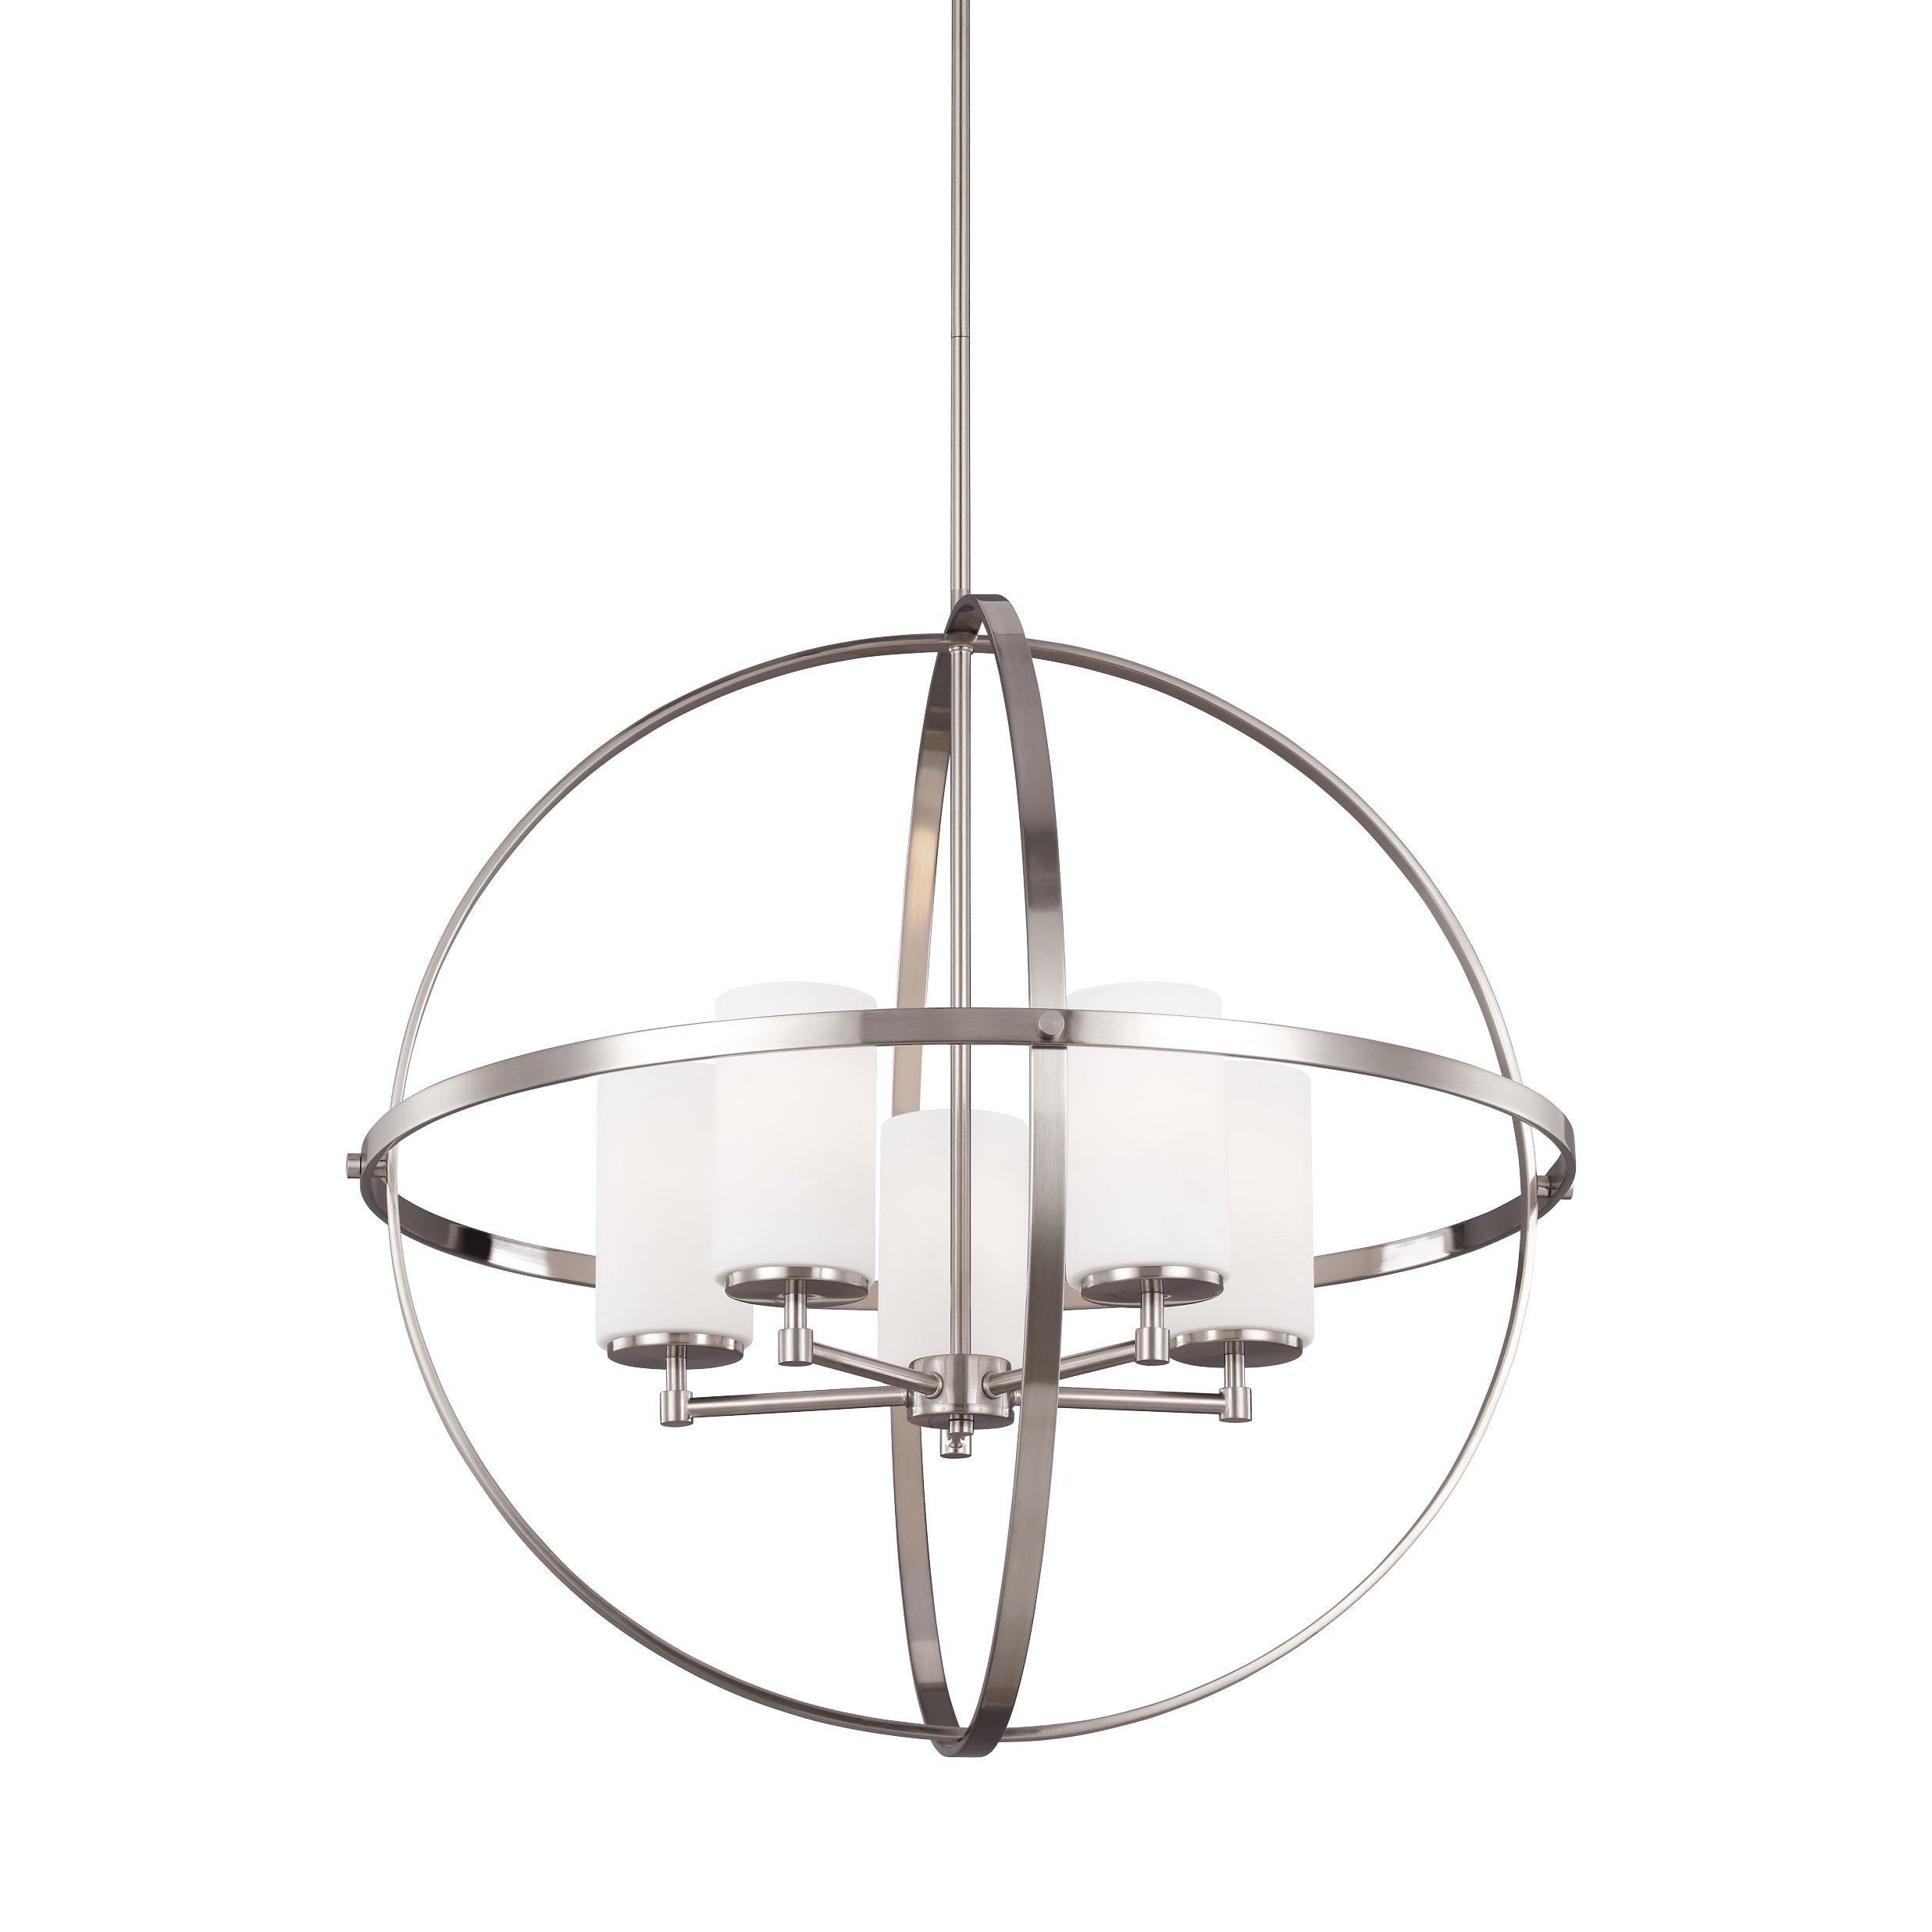 shop large chandelier pm vittoria nickel screen at shot now